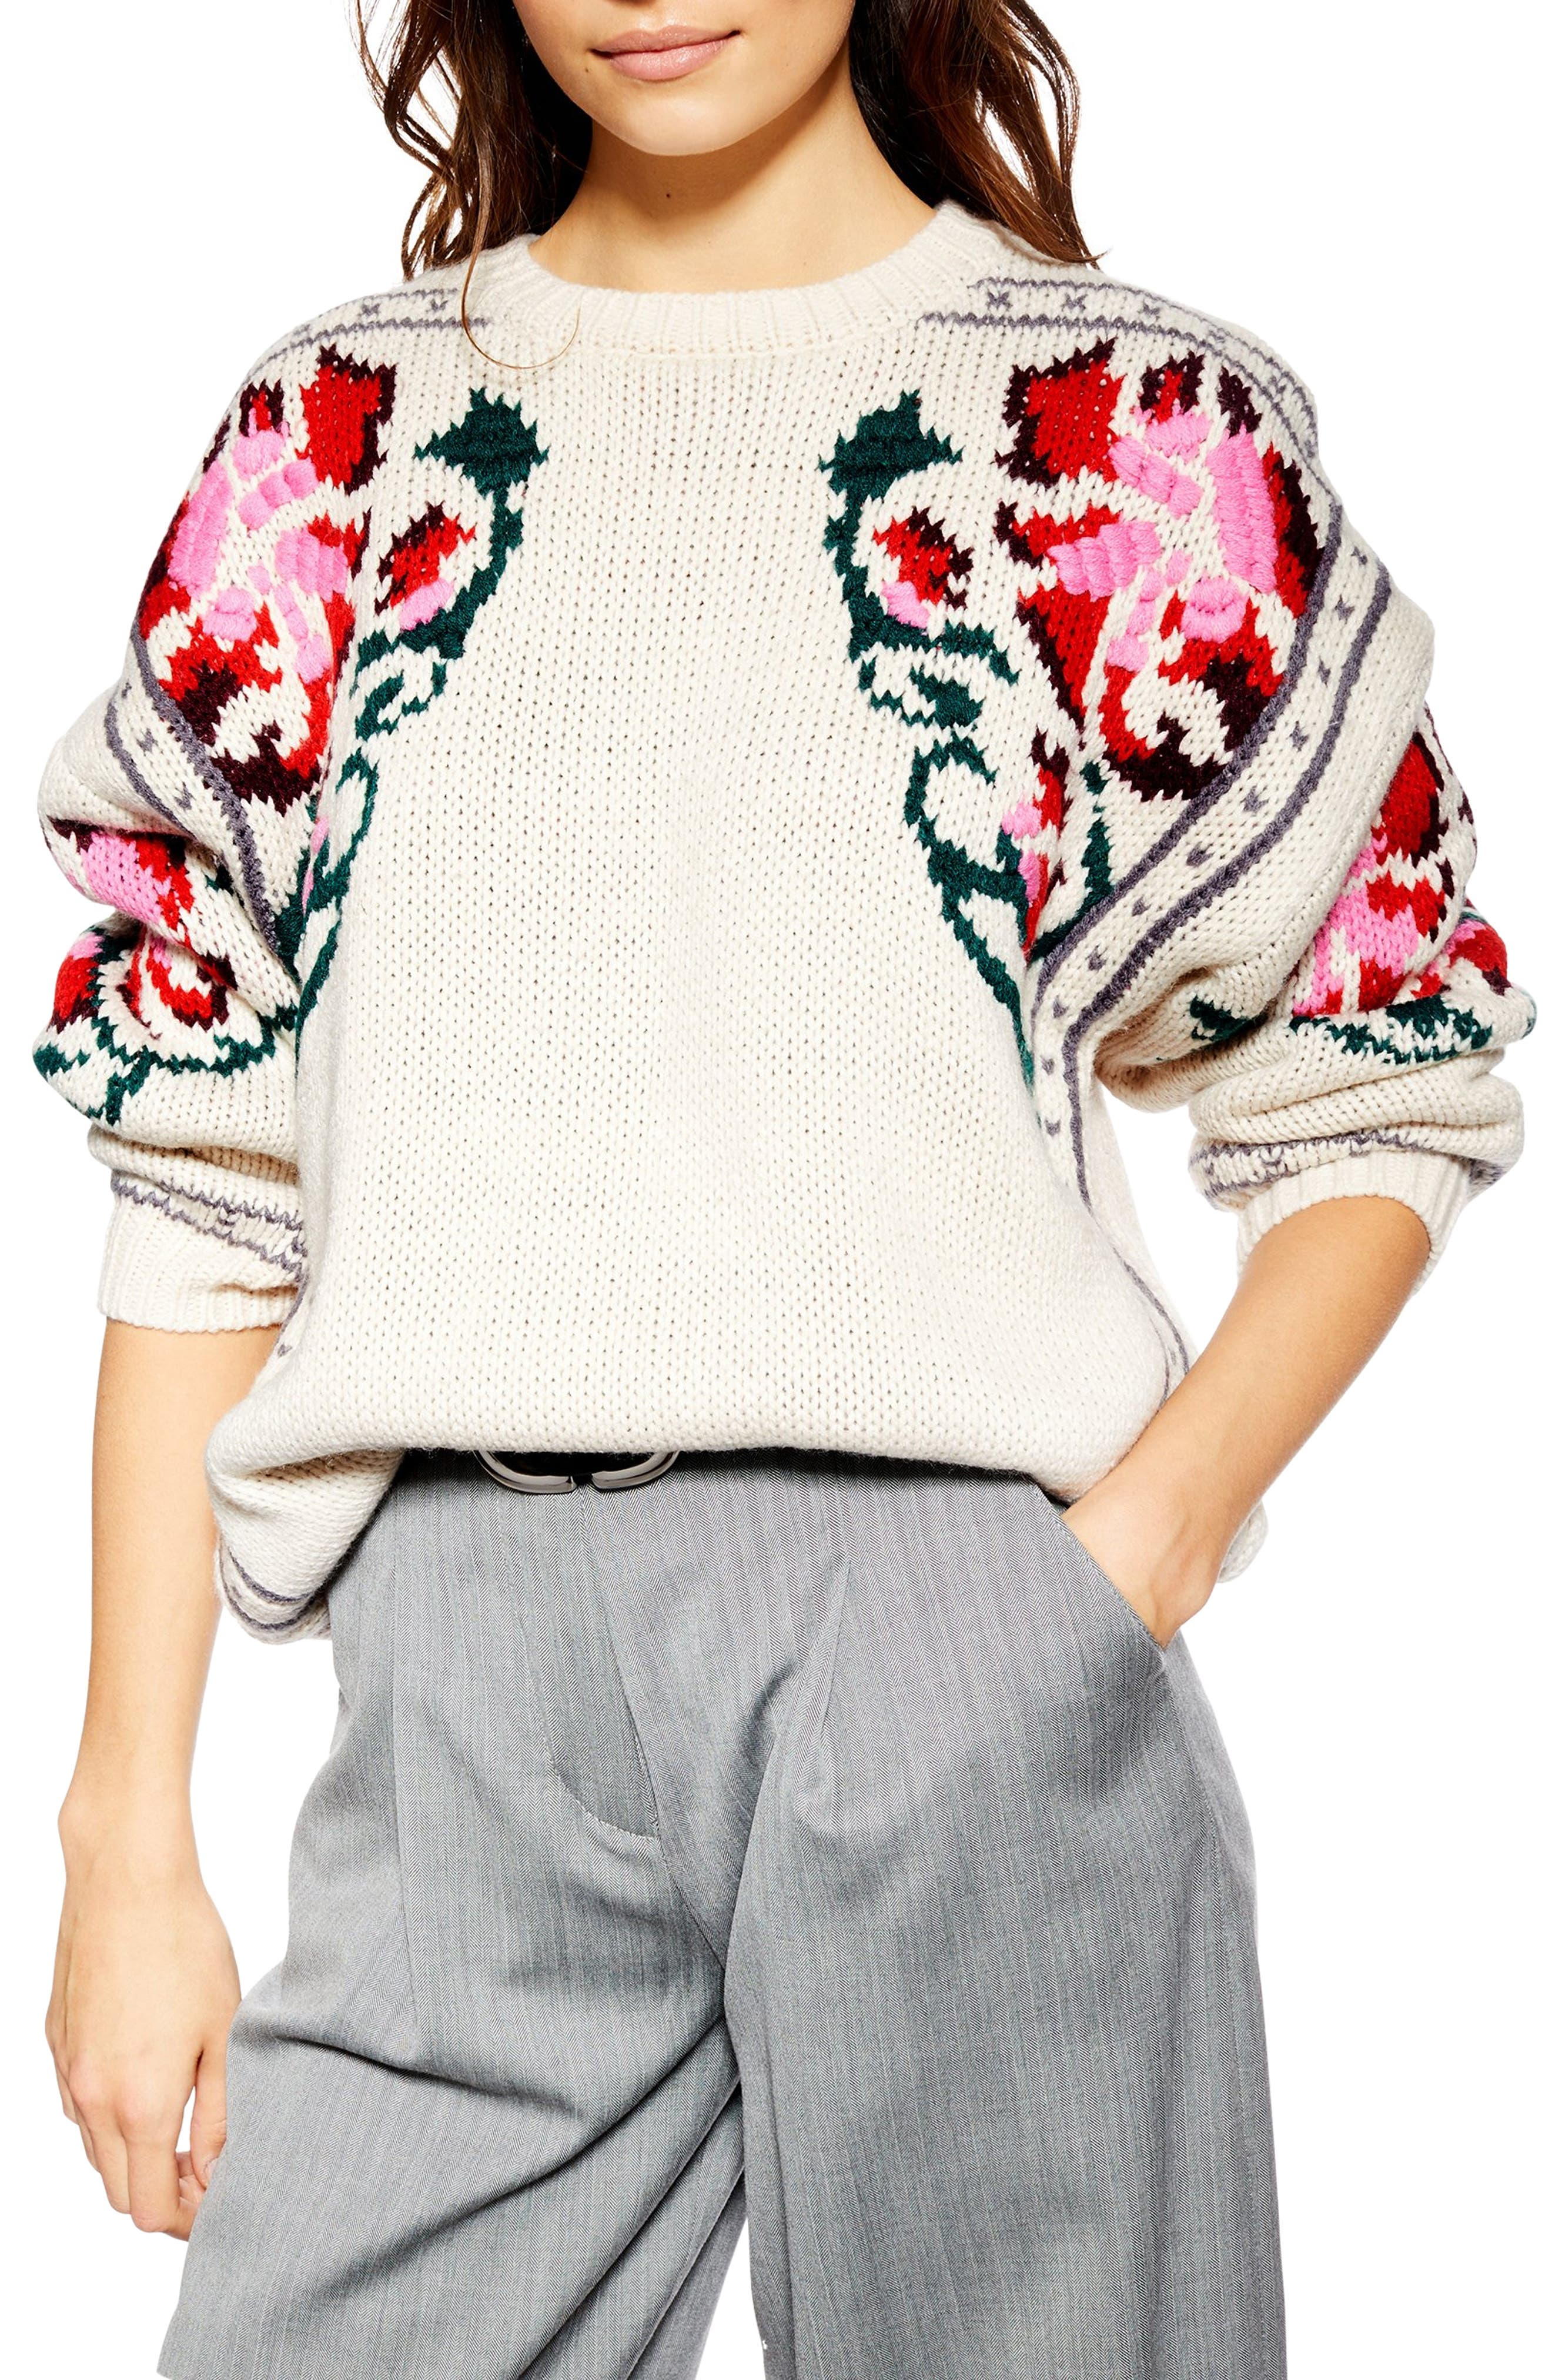 Floral Border Embroidered Sweater,                             Main thumbnail 1, color,                             IVORY MULTI